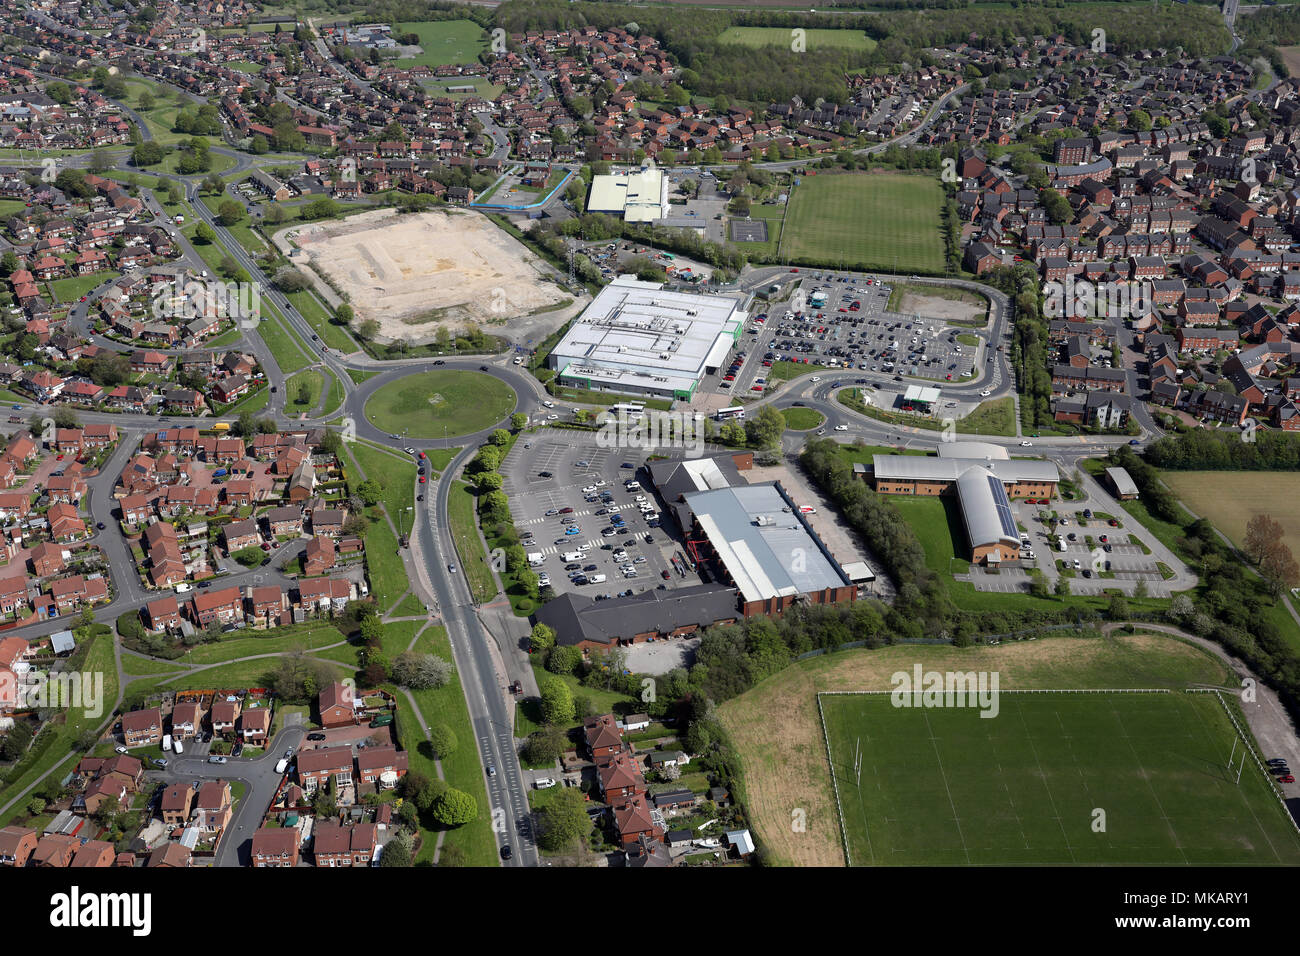 aerial view of the Belle Isle, Middleton area of Leeds, West Yorkshire - Stock Image